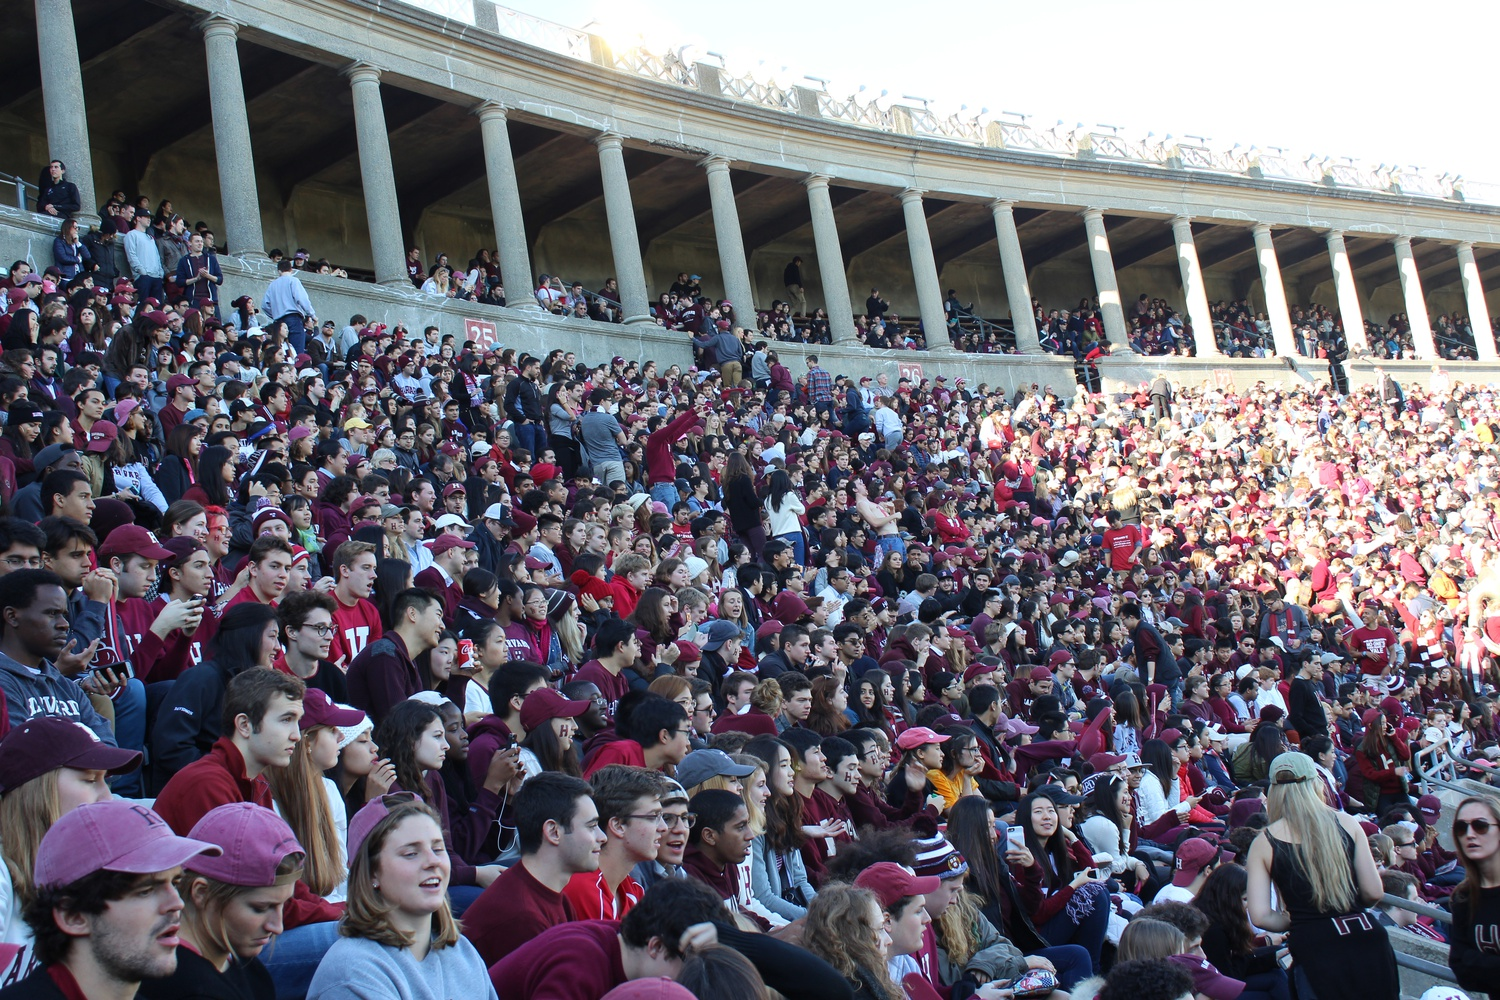 """A capacity crowd fills Harvard Stadium in the 2016 football game against Yale, the last time """"The Game"""" took place at Harvard. Fenway Park hosted the 2018 contest, and the 2020 installment was canceled. In 2020-21, The Harvard Athletic Center has remained largely empty to contests and spectators, opening only to limited groups of student-athletes to practice. All of this will change soon."""